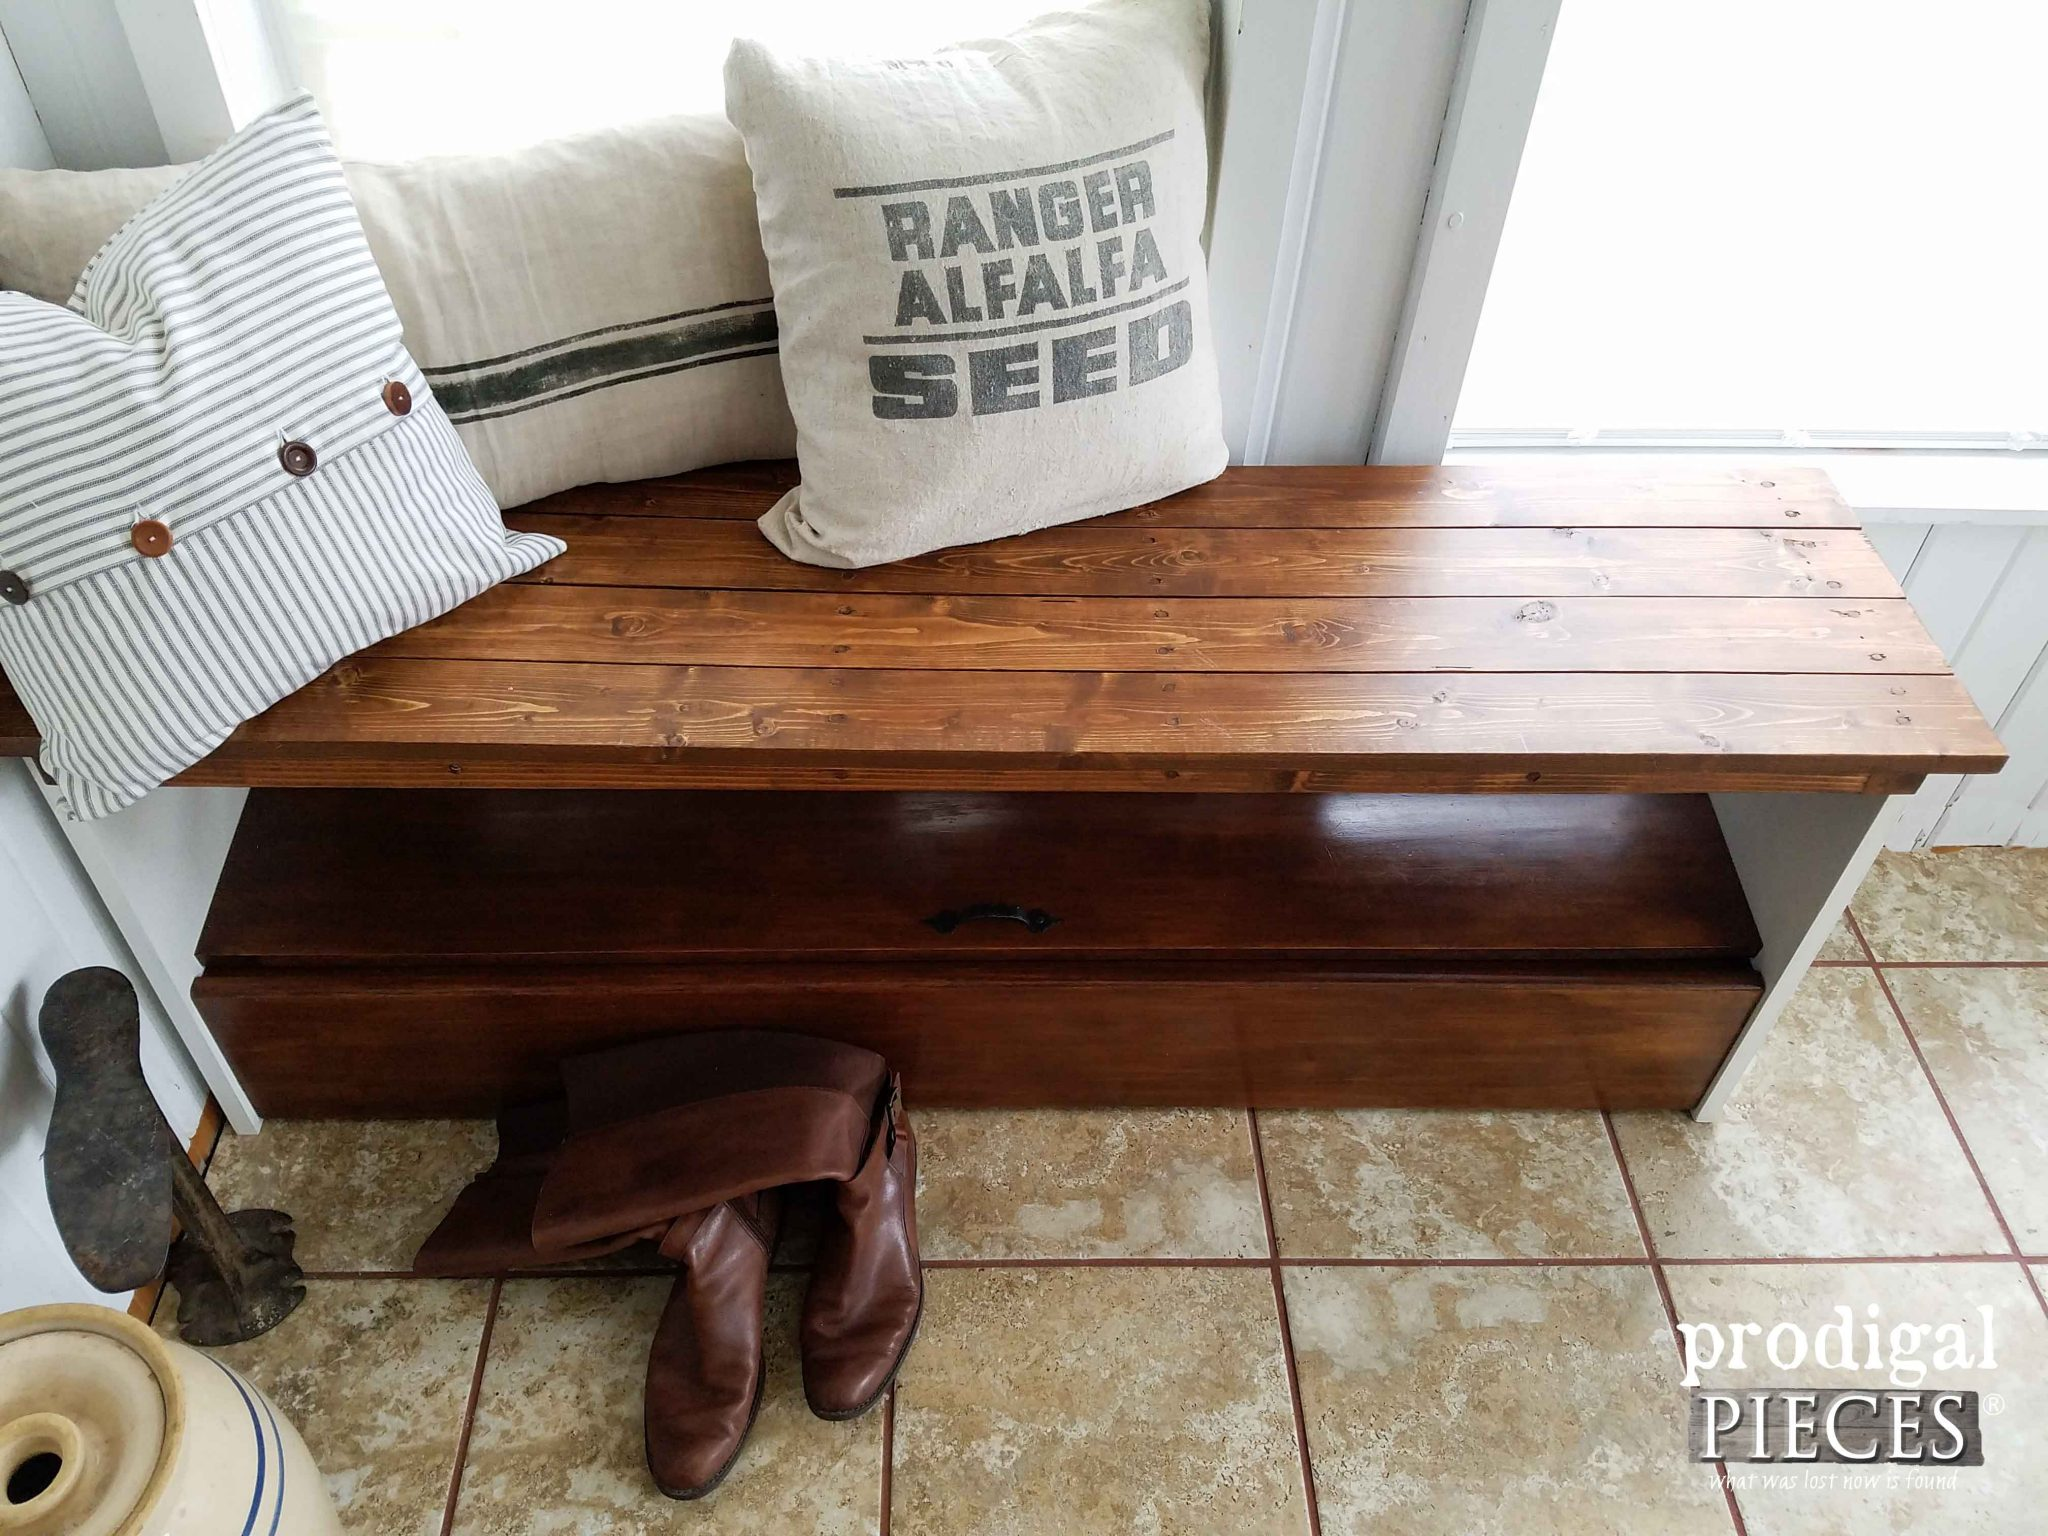 Upcycled Bookcase Headboard Bench with Storage by Prodigal Pieces | prodigalpieces.com